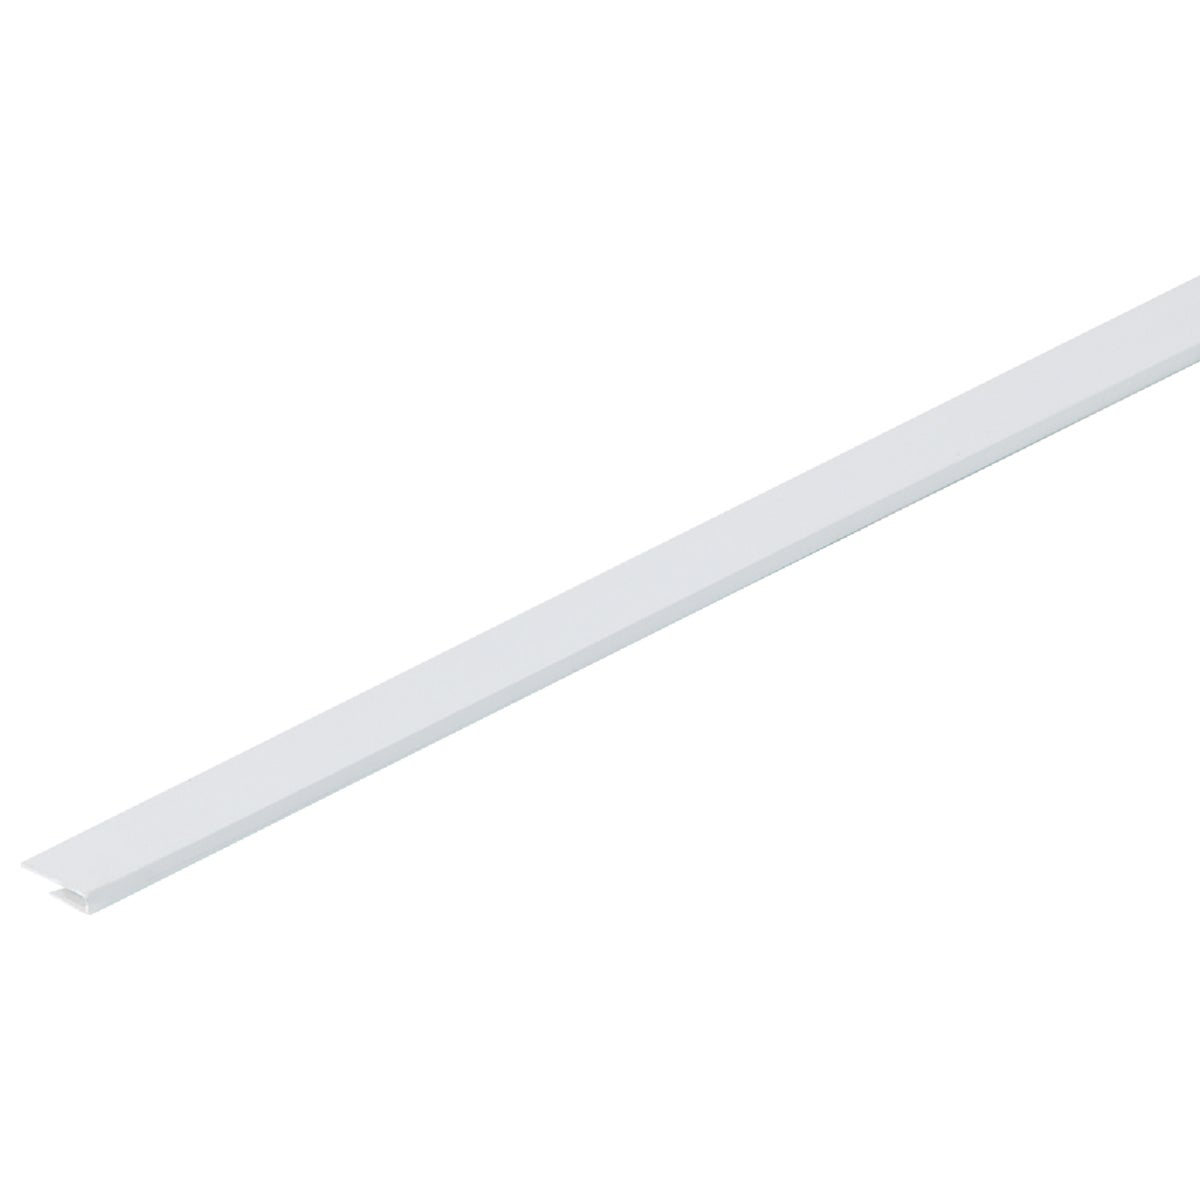 8' WHT FRP END CAP - M.CP113008 by Crane Comp Sequentia